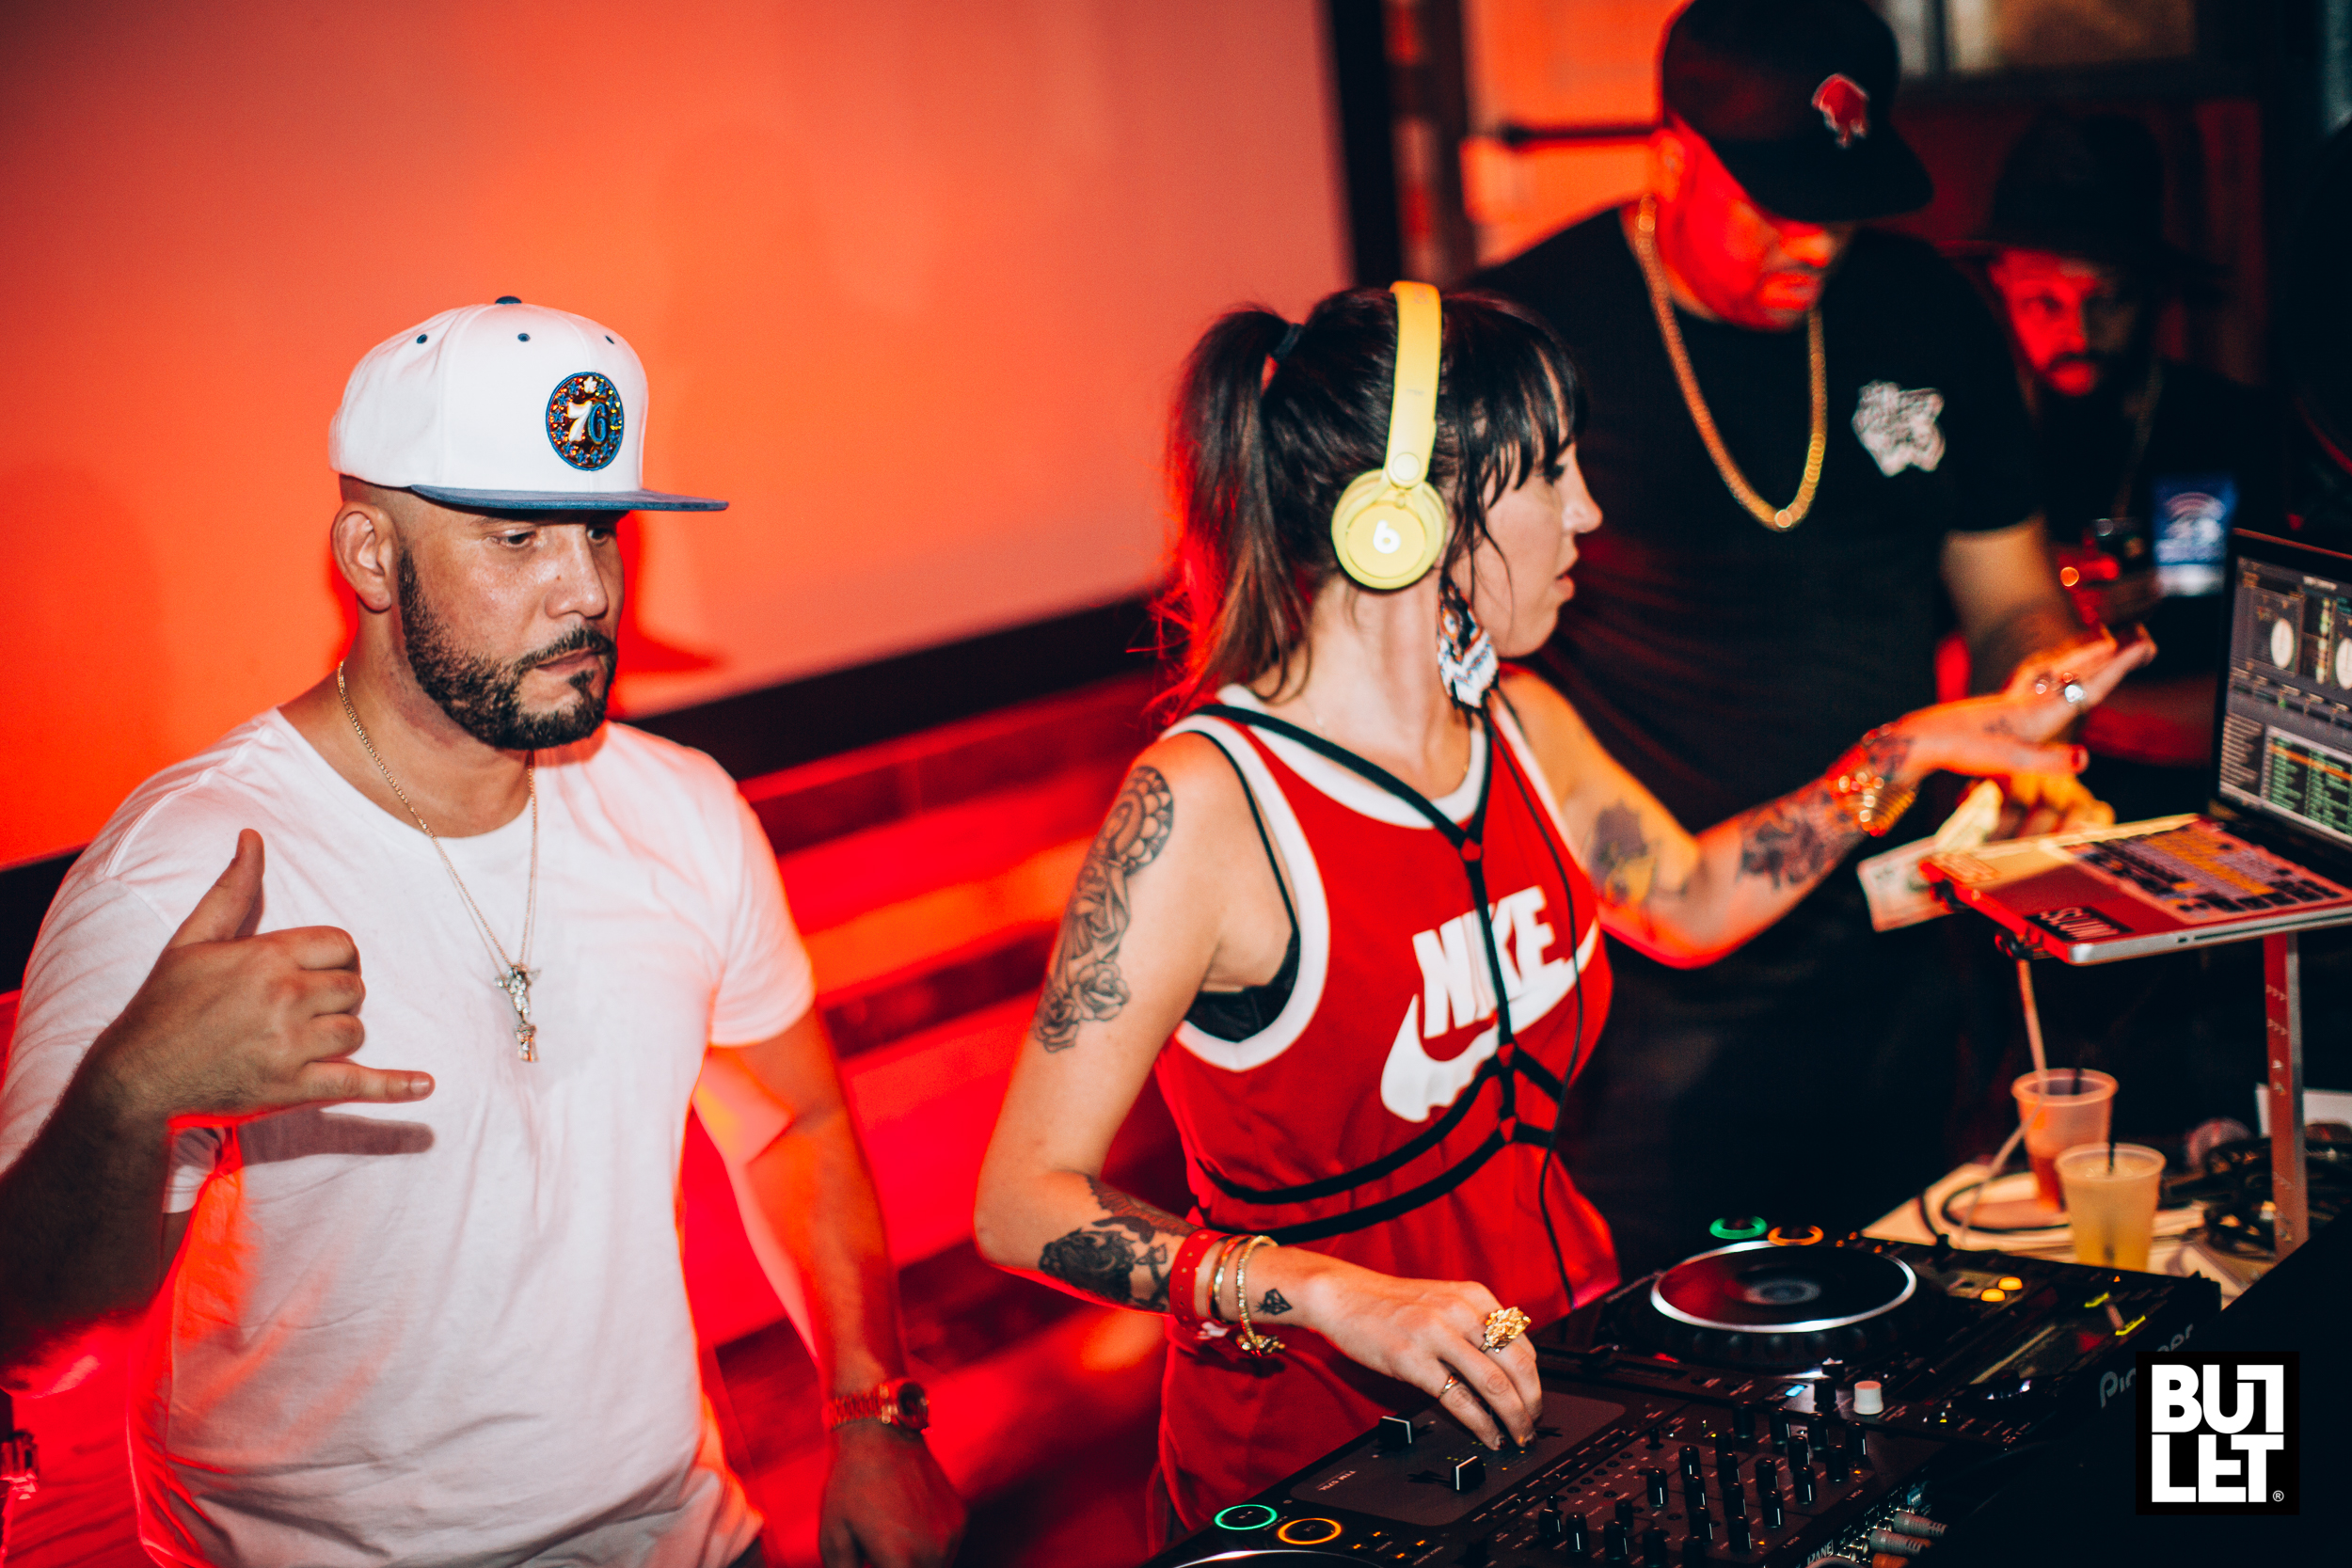 DJ Drama Don Cannon Speakerfoxxx-9.jpg